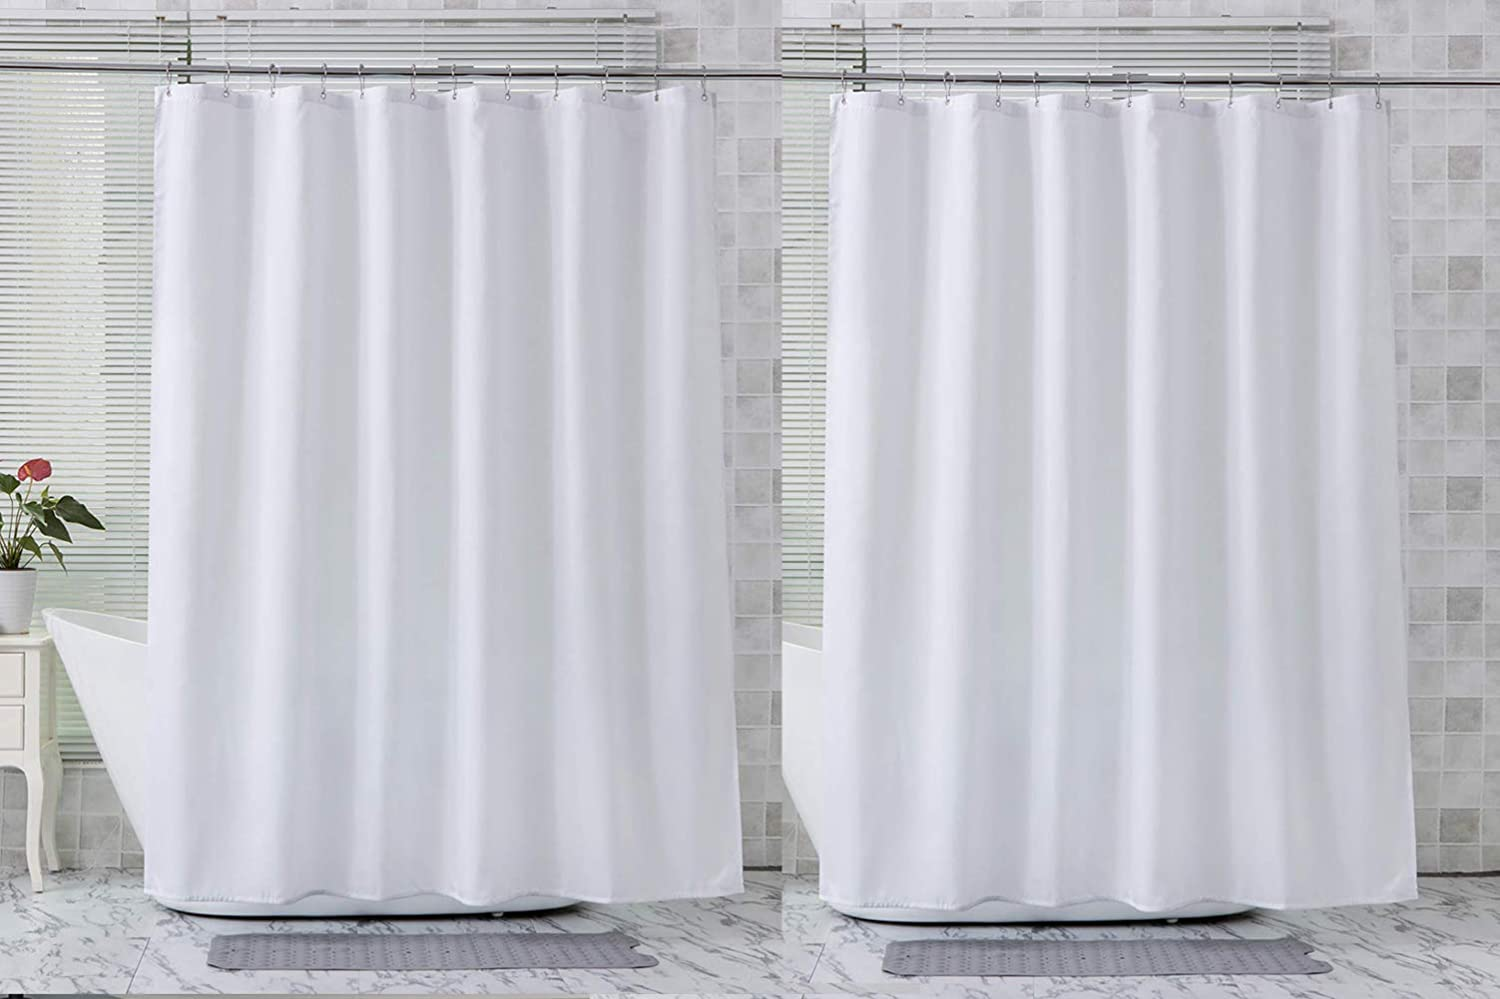 AmazerBath 2-Pack Fabric Shower Curtain, Water Repellent White Polyester Shower Curtains Shower Curtain Liner Bathroom Shower Curtains, 72 x 72 Inches